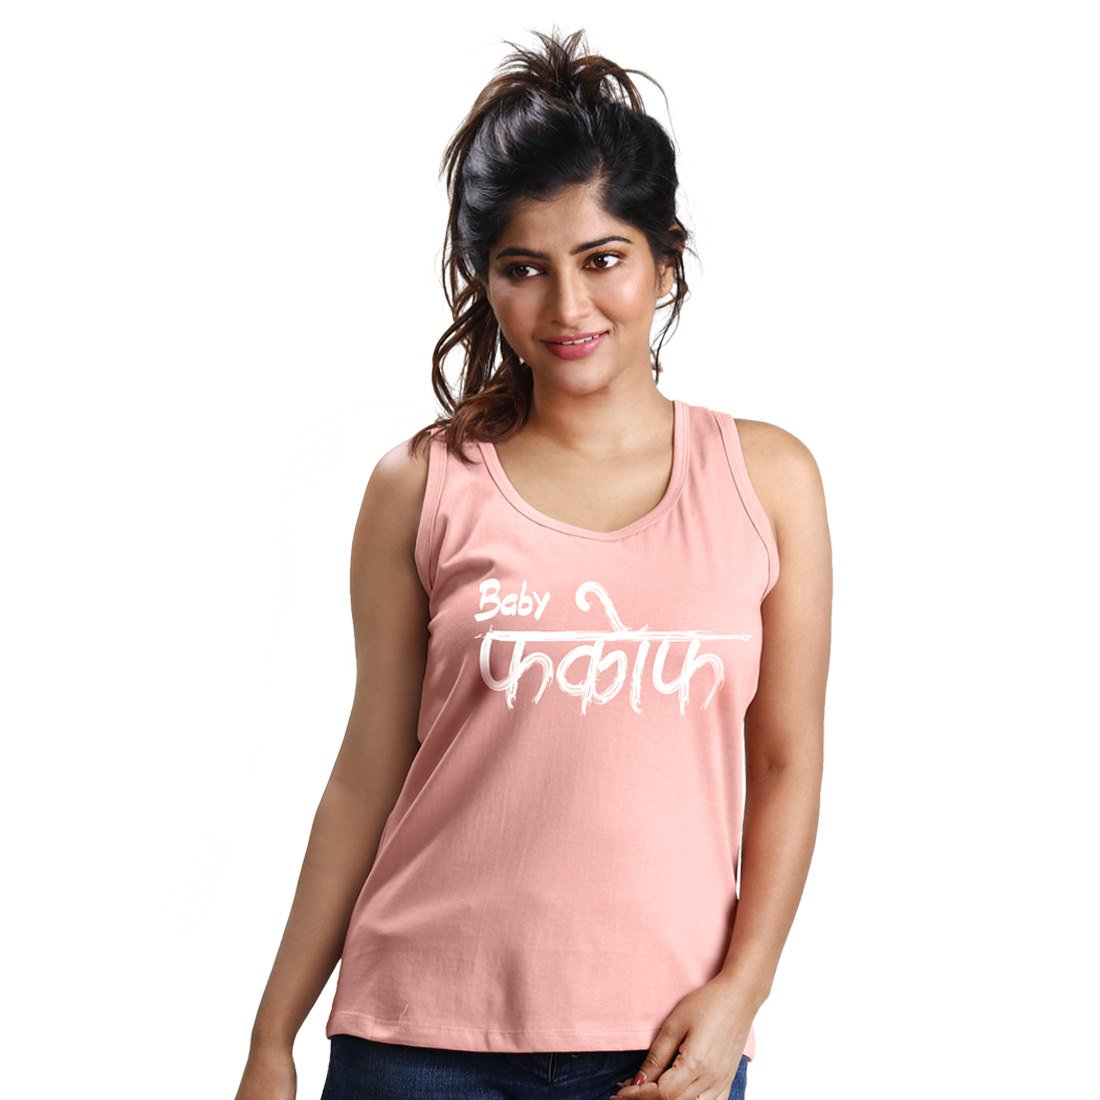 435ee184be0f7 Beyoung Women s Premium Cotton Tank top with Baby Fuck Off Design  (BY-W-SL-005 Medium Pink)  Amazon.in  Clothing   Accessories